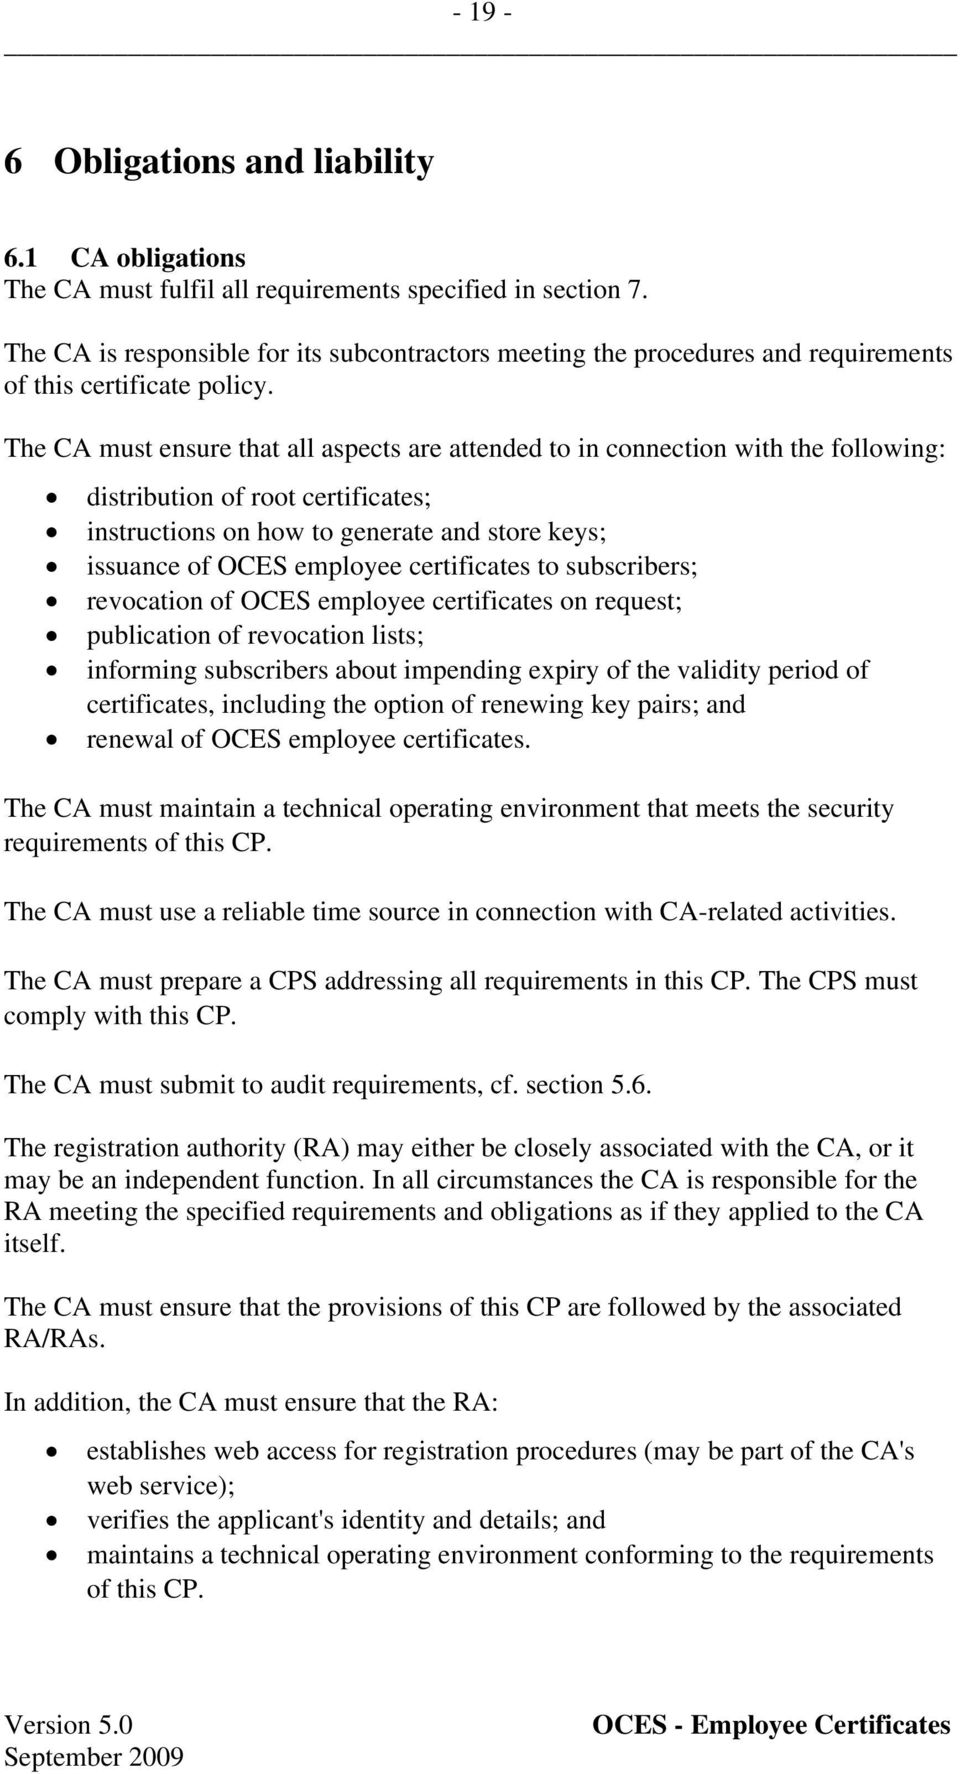 The CA must ensure that all aspects are attended to in connection with the following: distribution of root certificates; instructions on how to generate and store keys; issuance of OCES employee